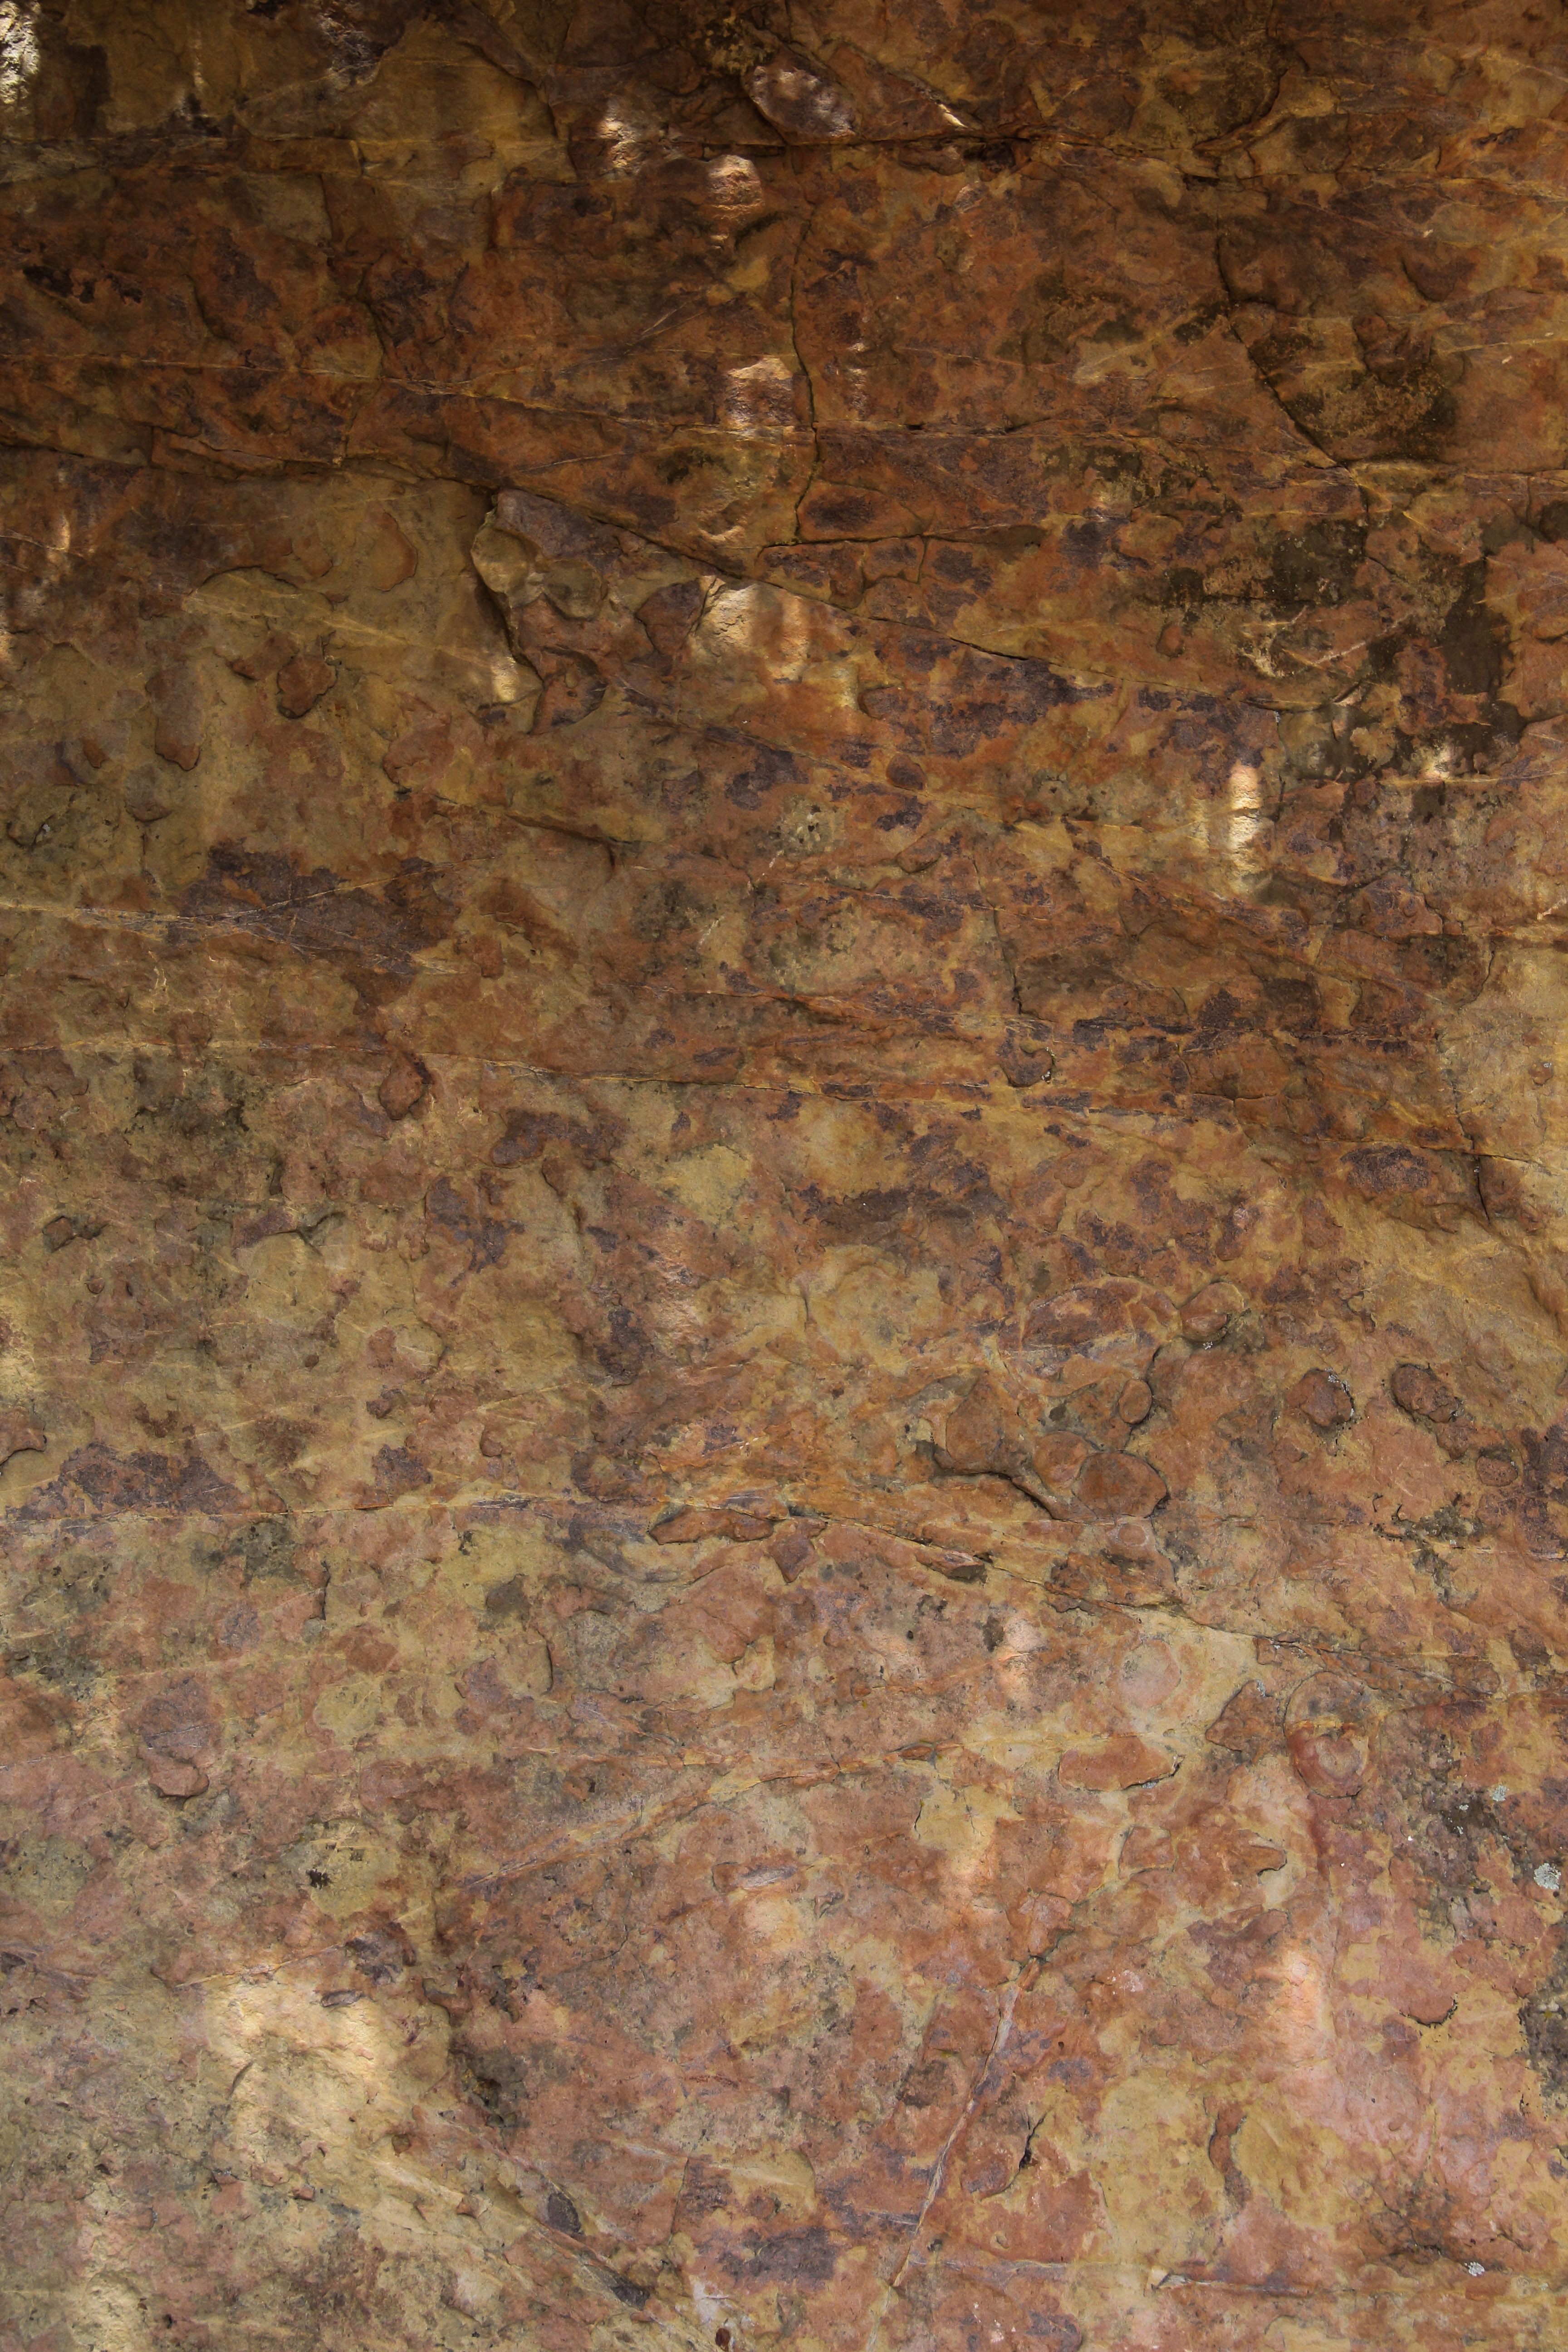 Brown Granite Rock : Red rock texture spotted brown colorful surface formation